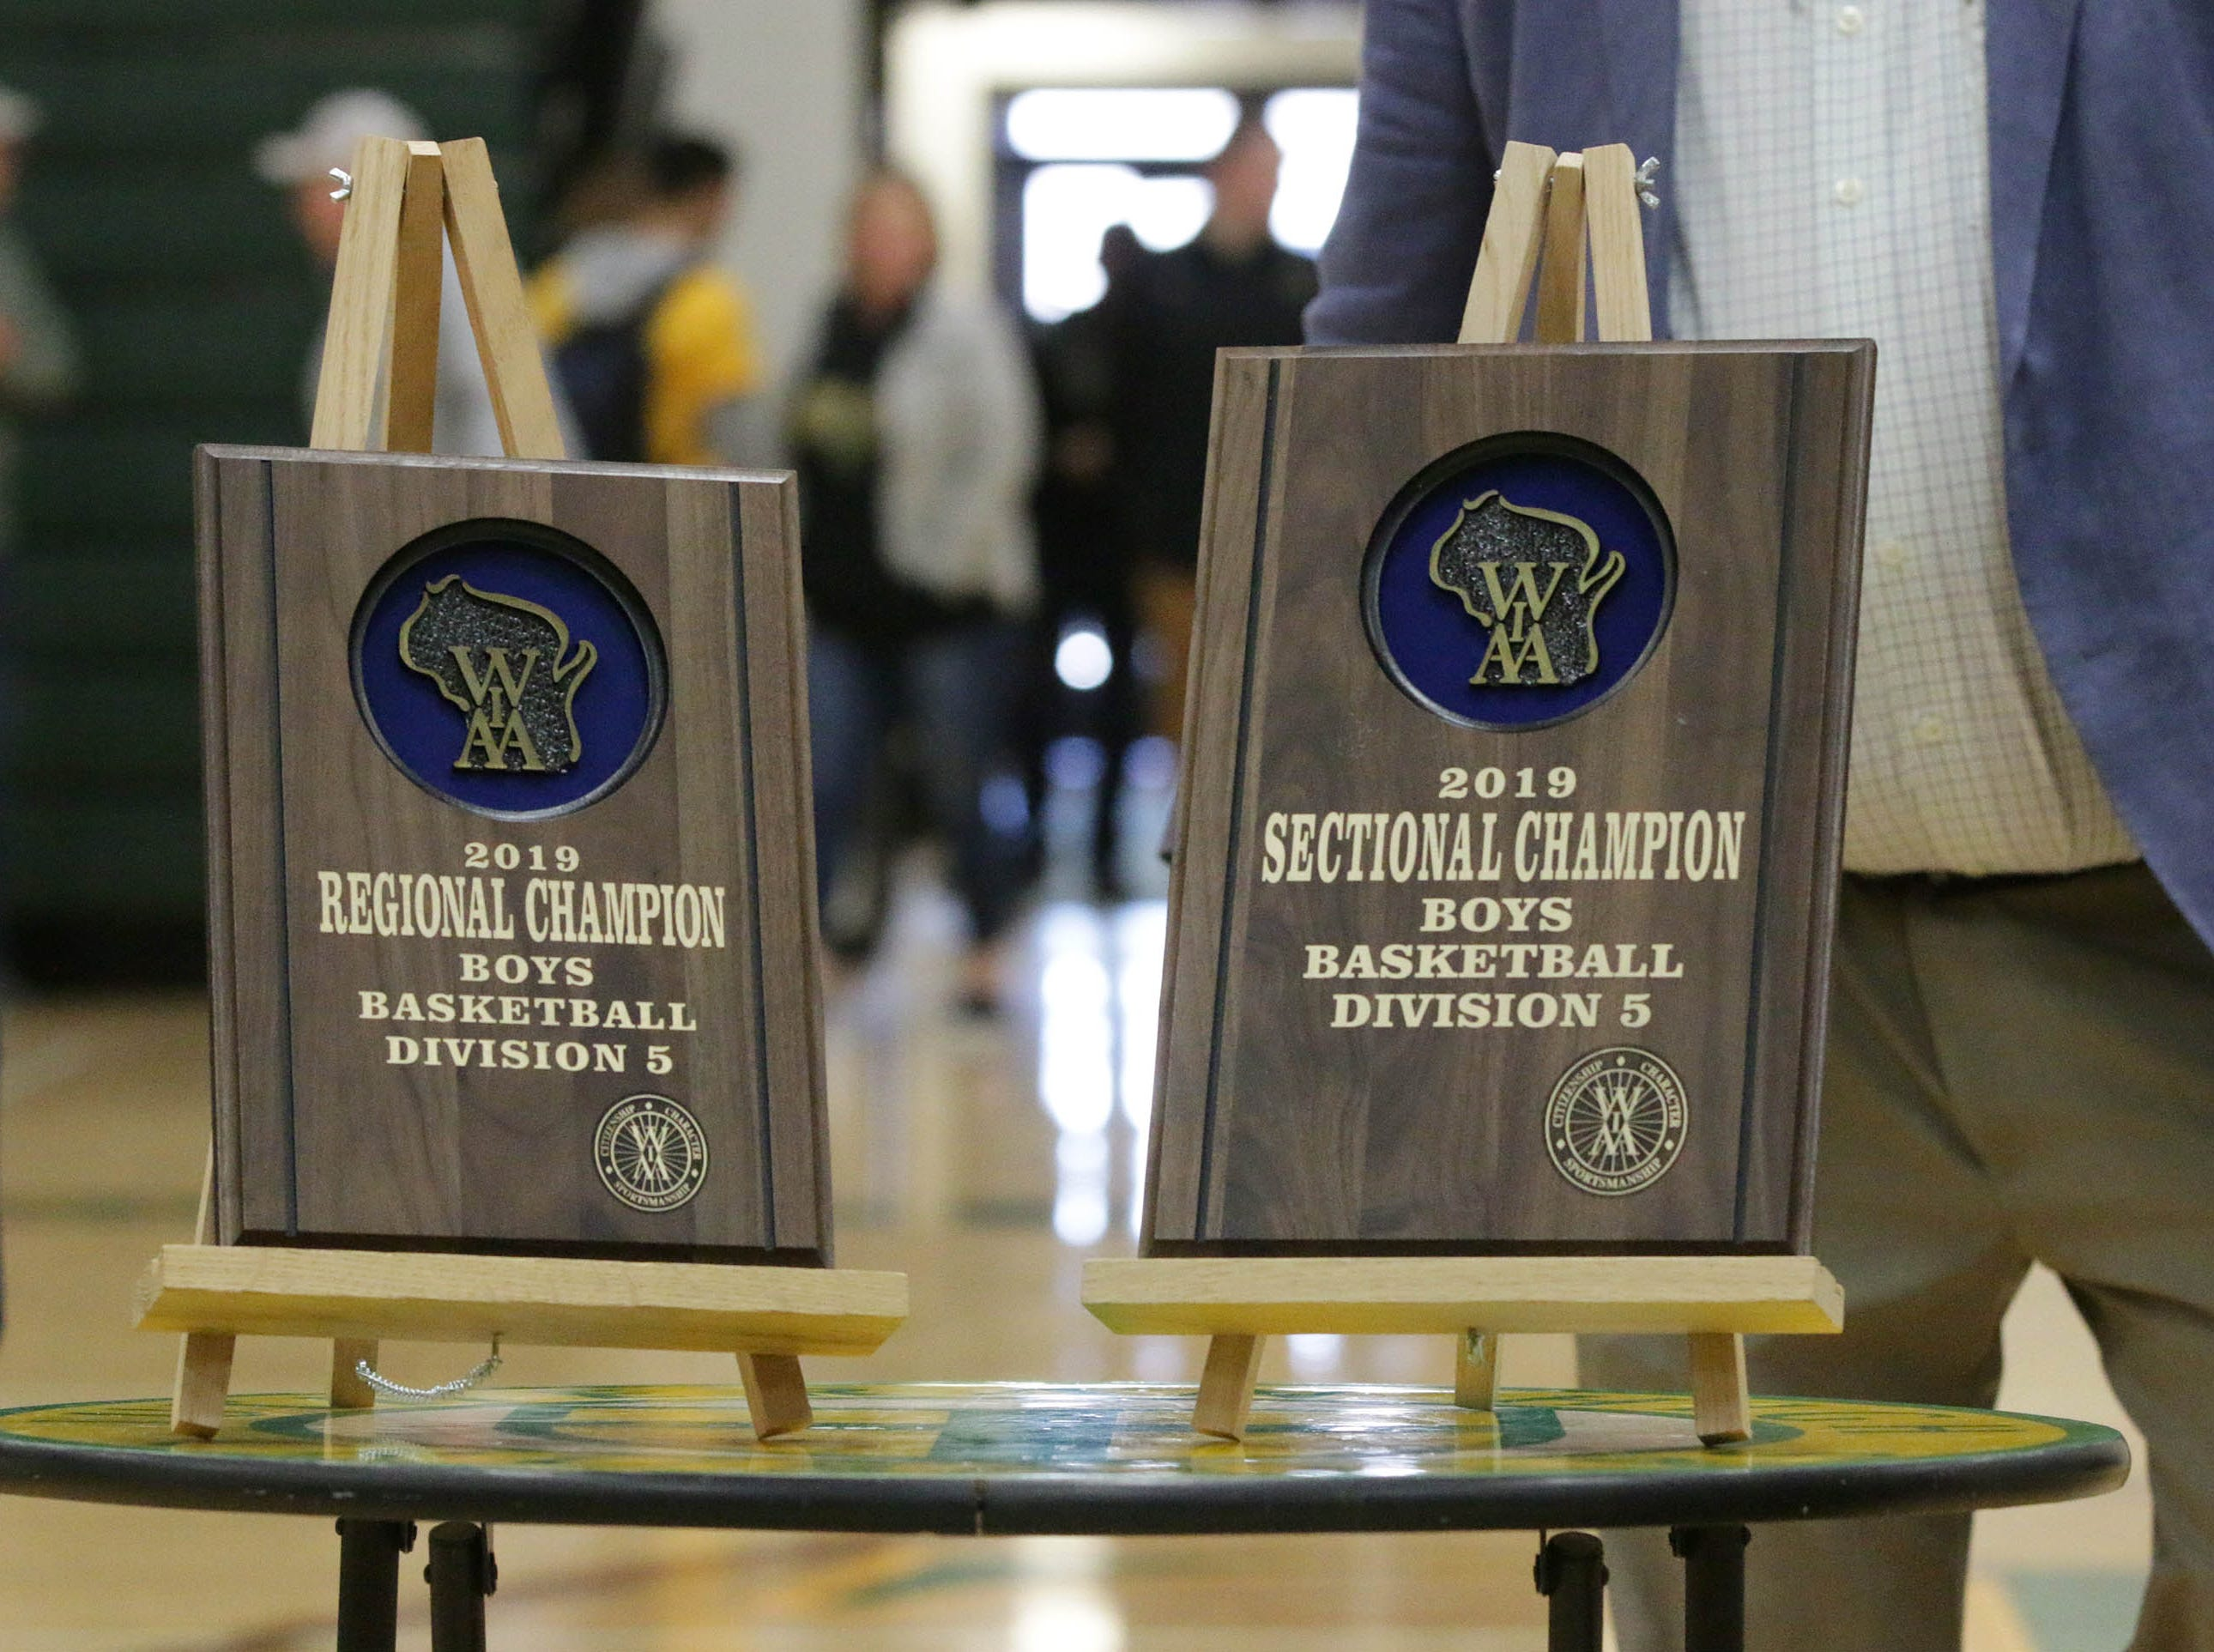 Trophies from the other championships that the Sheboygan Lutheran boys basketball team got on their way to state as seen at a rally, Sunday, March 17, 2019, in Sheboygan, Wis.